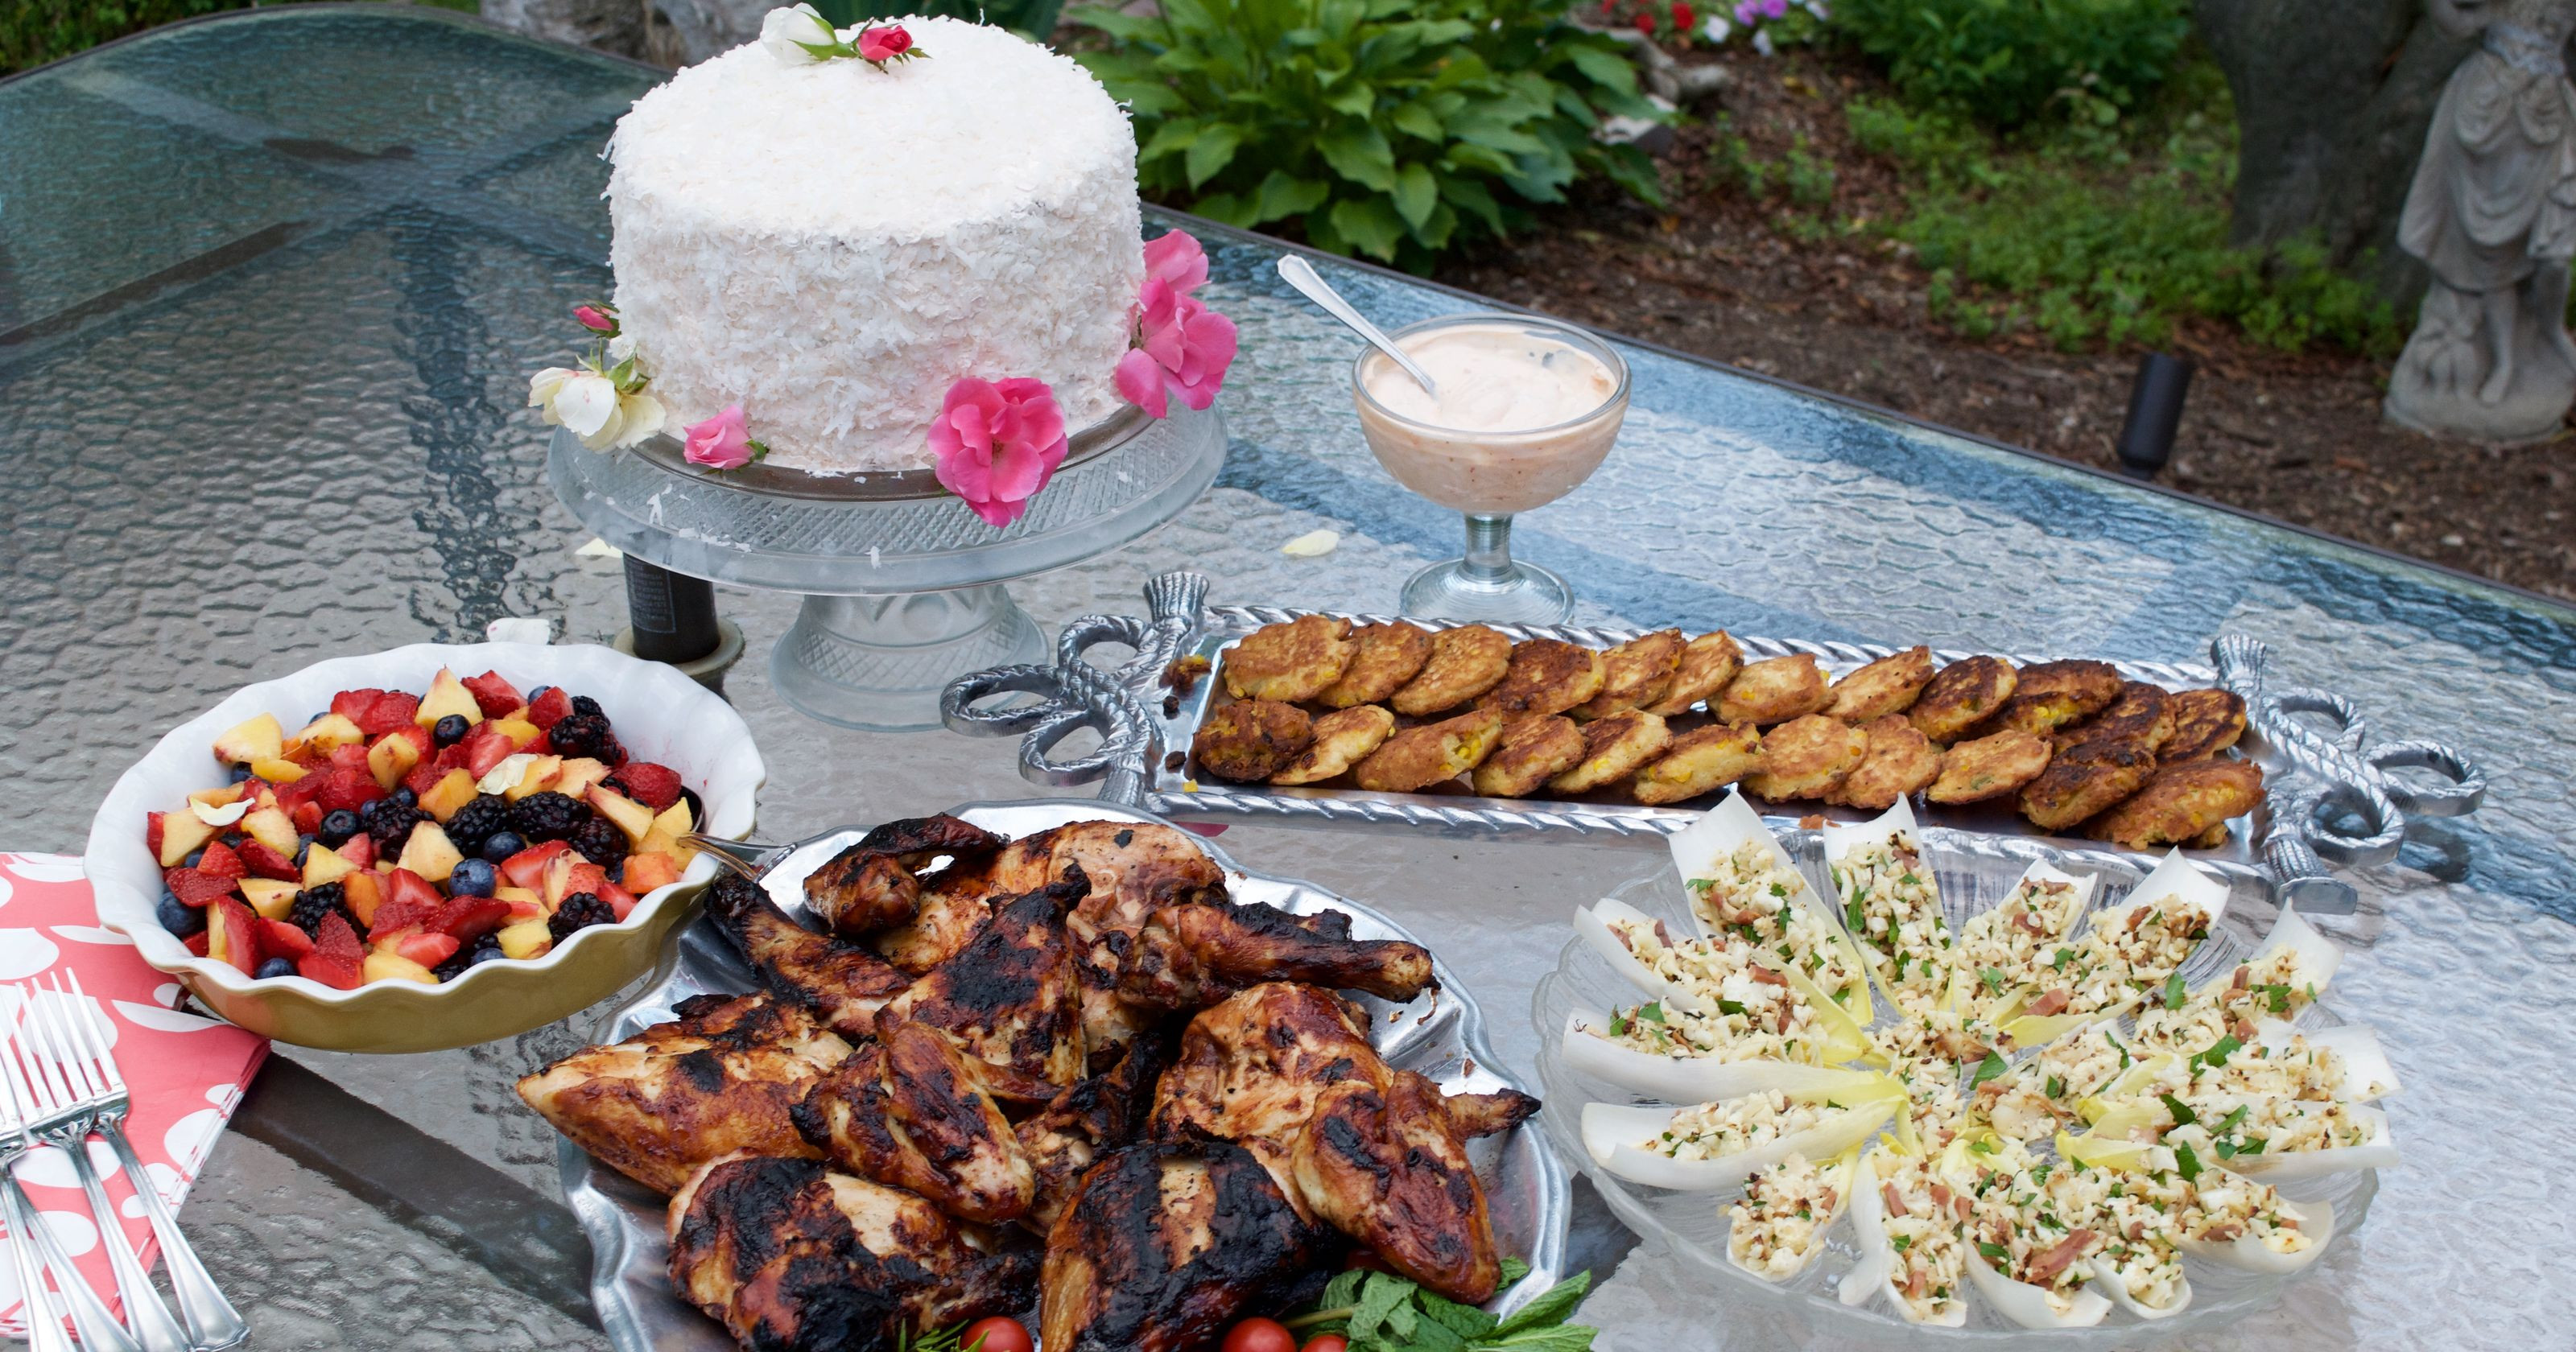 Summer Side Dishes For Cookout  Summer cookout es with a surprise birthday cake